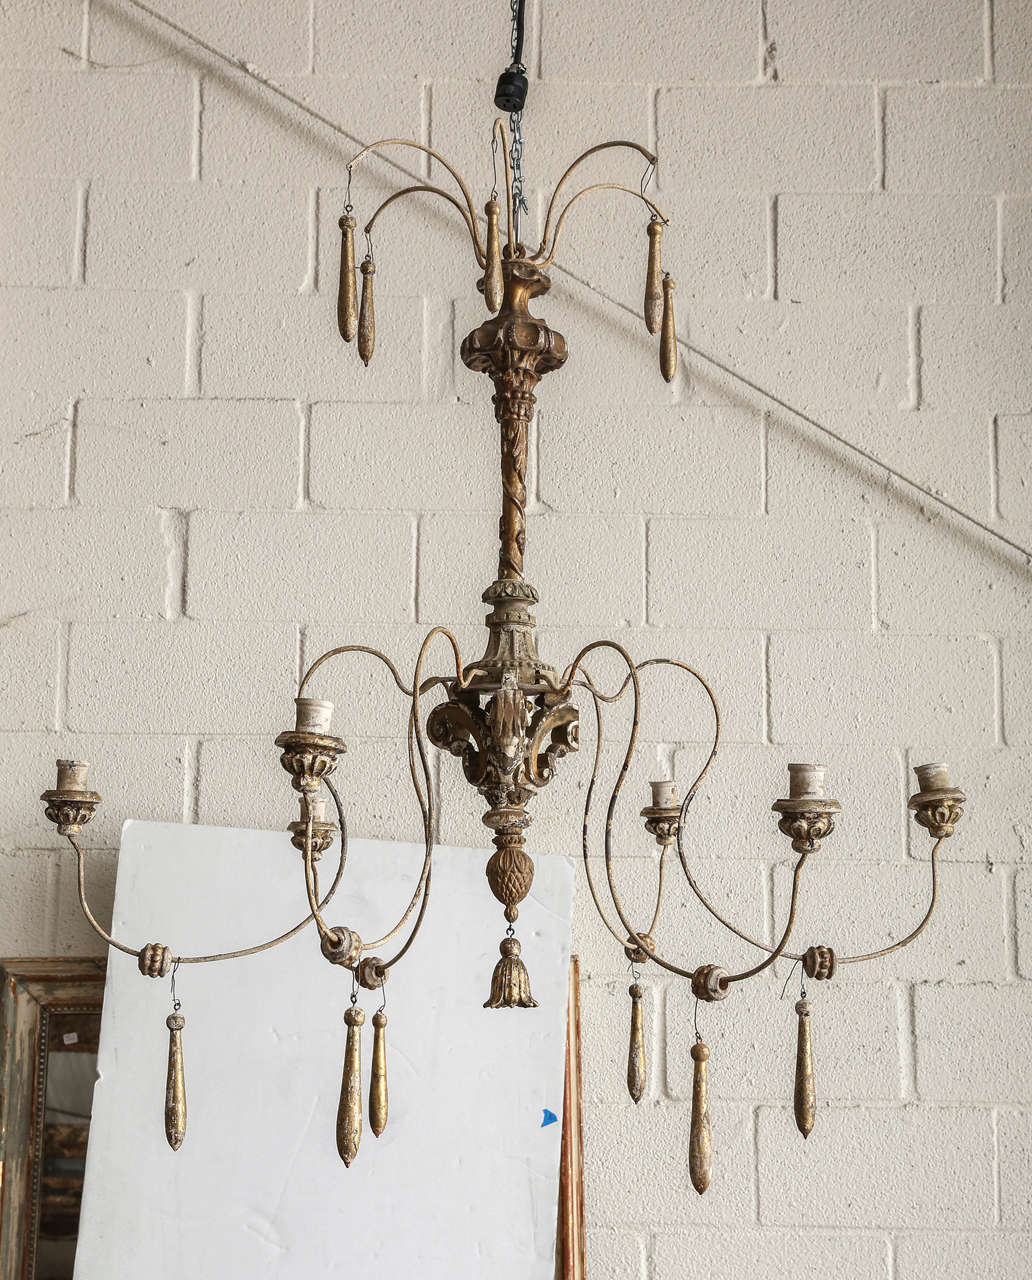 Spider Chandelier Made with Antique Italian Parts at 1stdibs